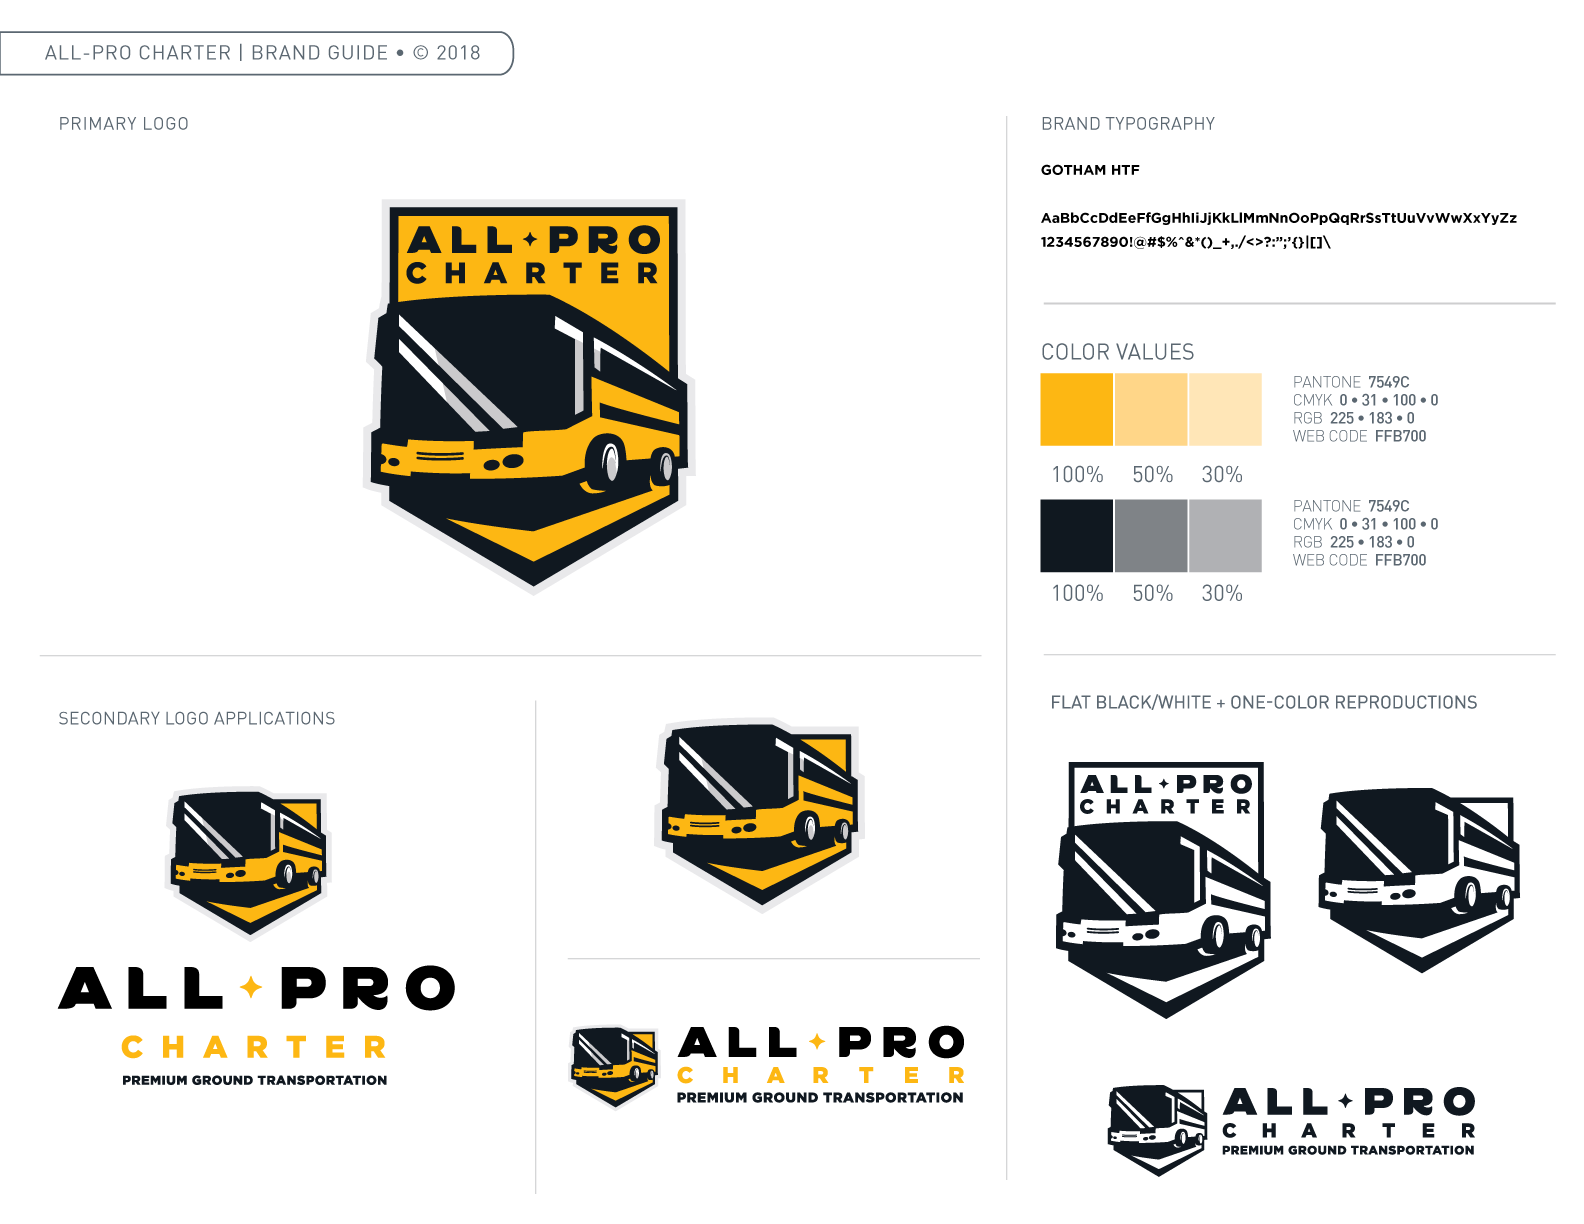 All Pro Charter Brand Guide